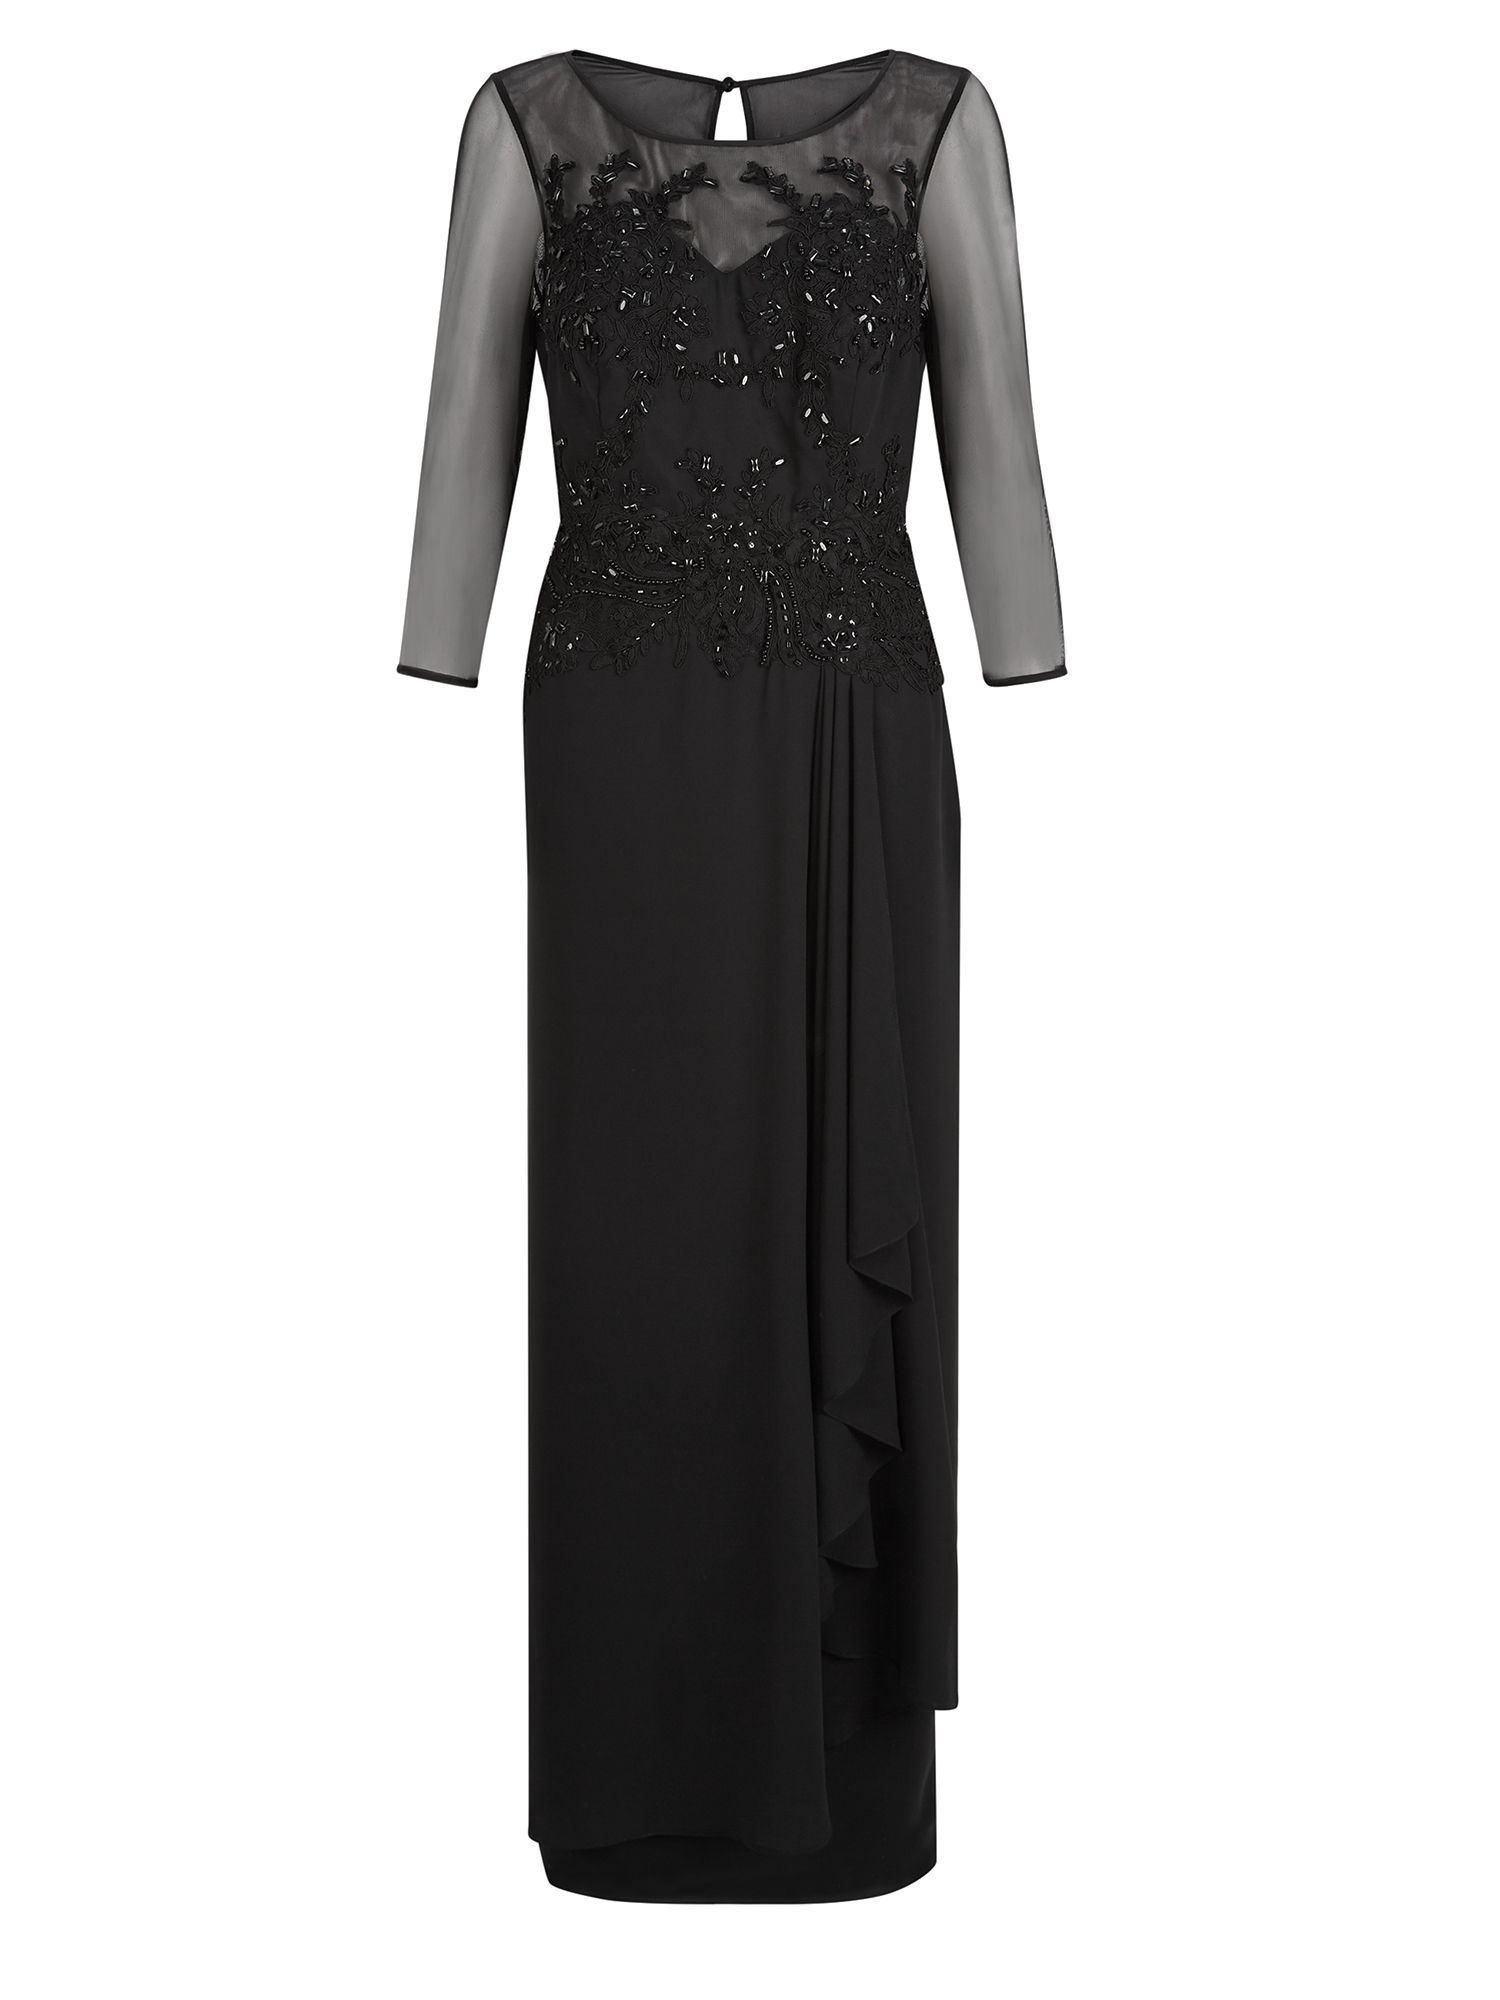 Jacques Vert Embellished Glamourous Maxi Dress $239.20 AT vintagedancer.com